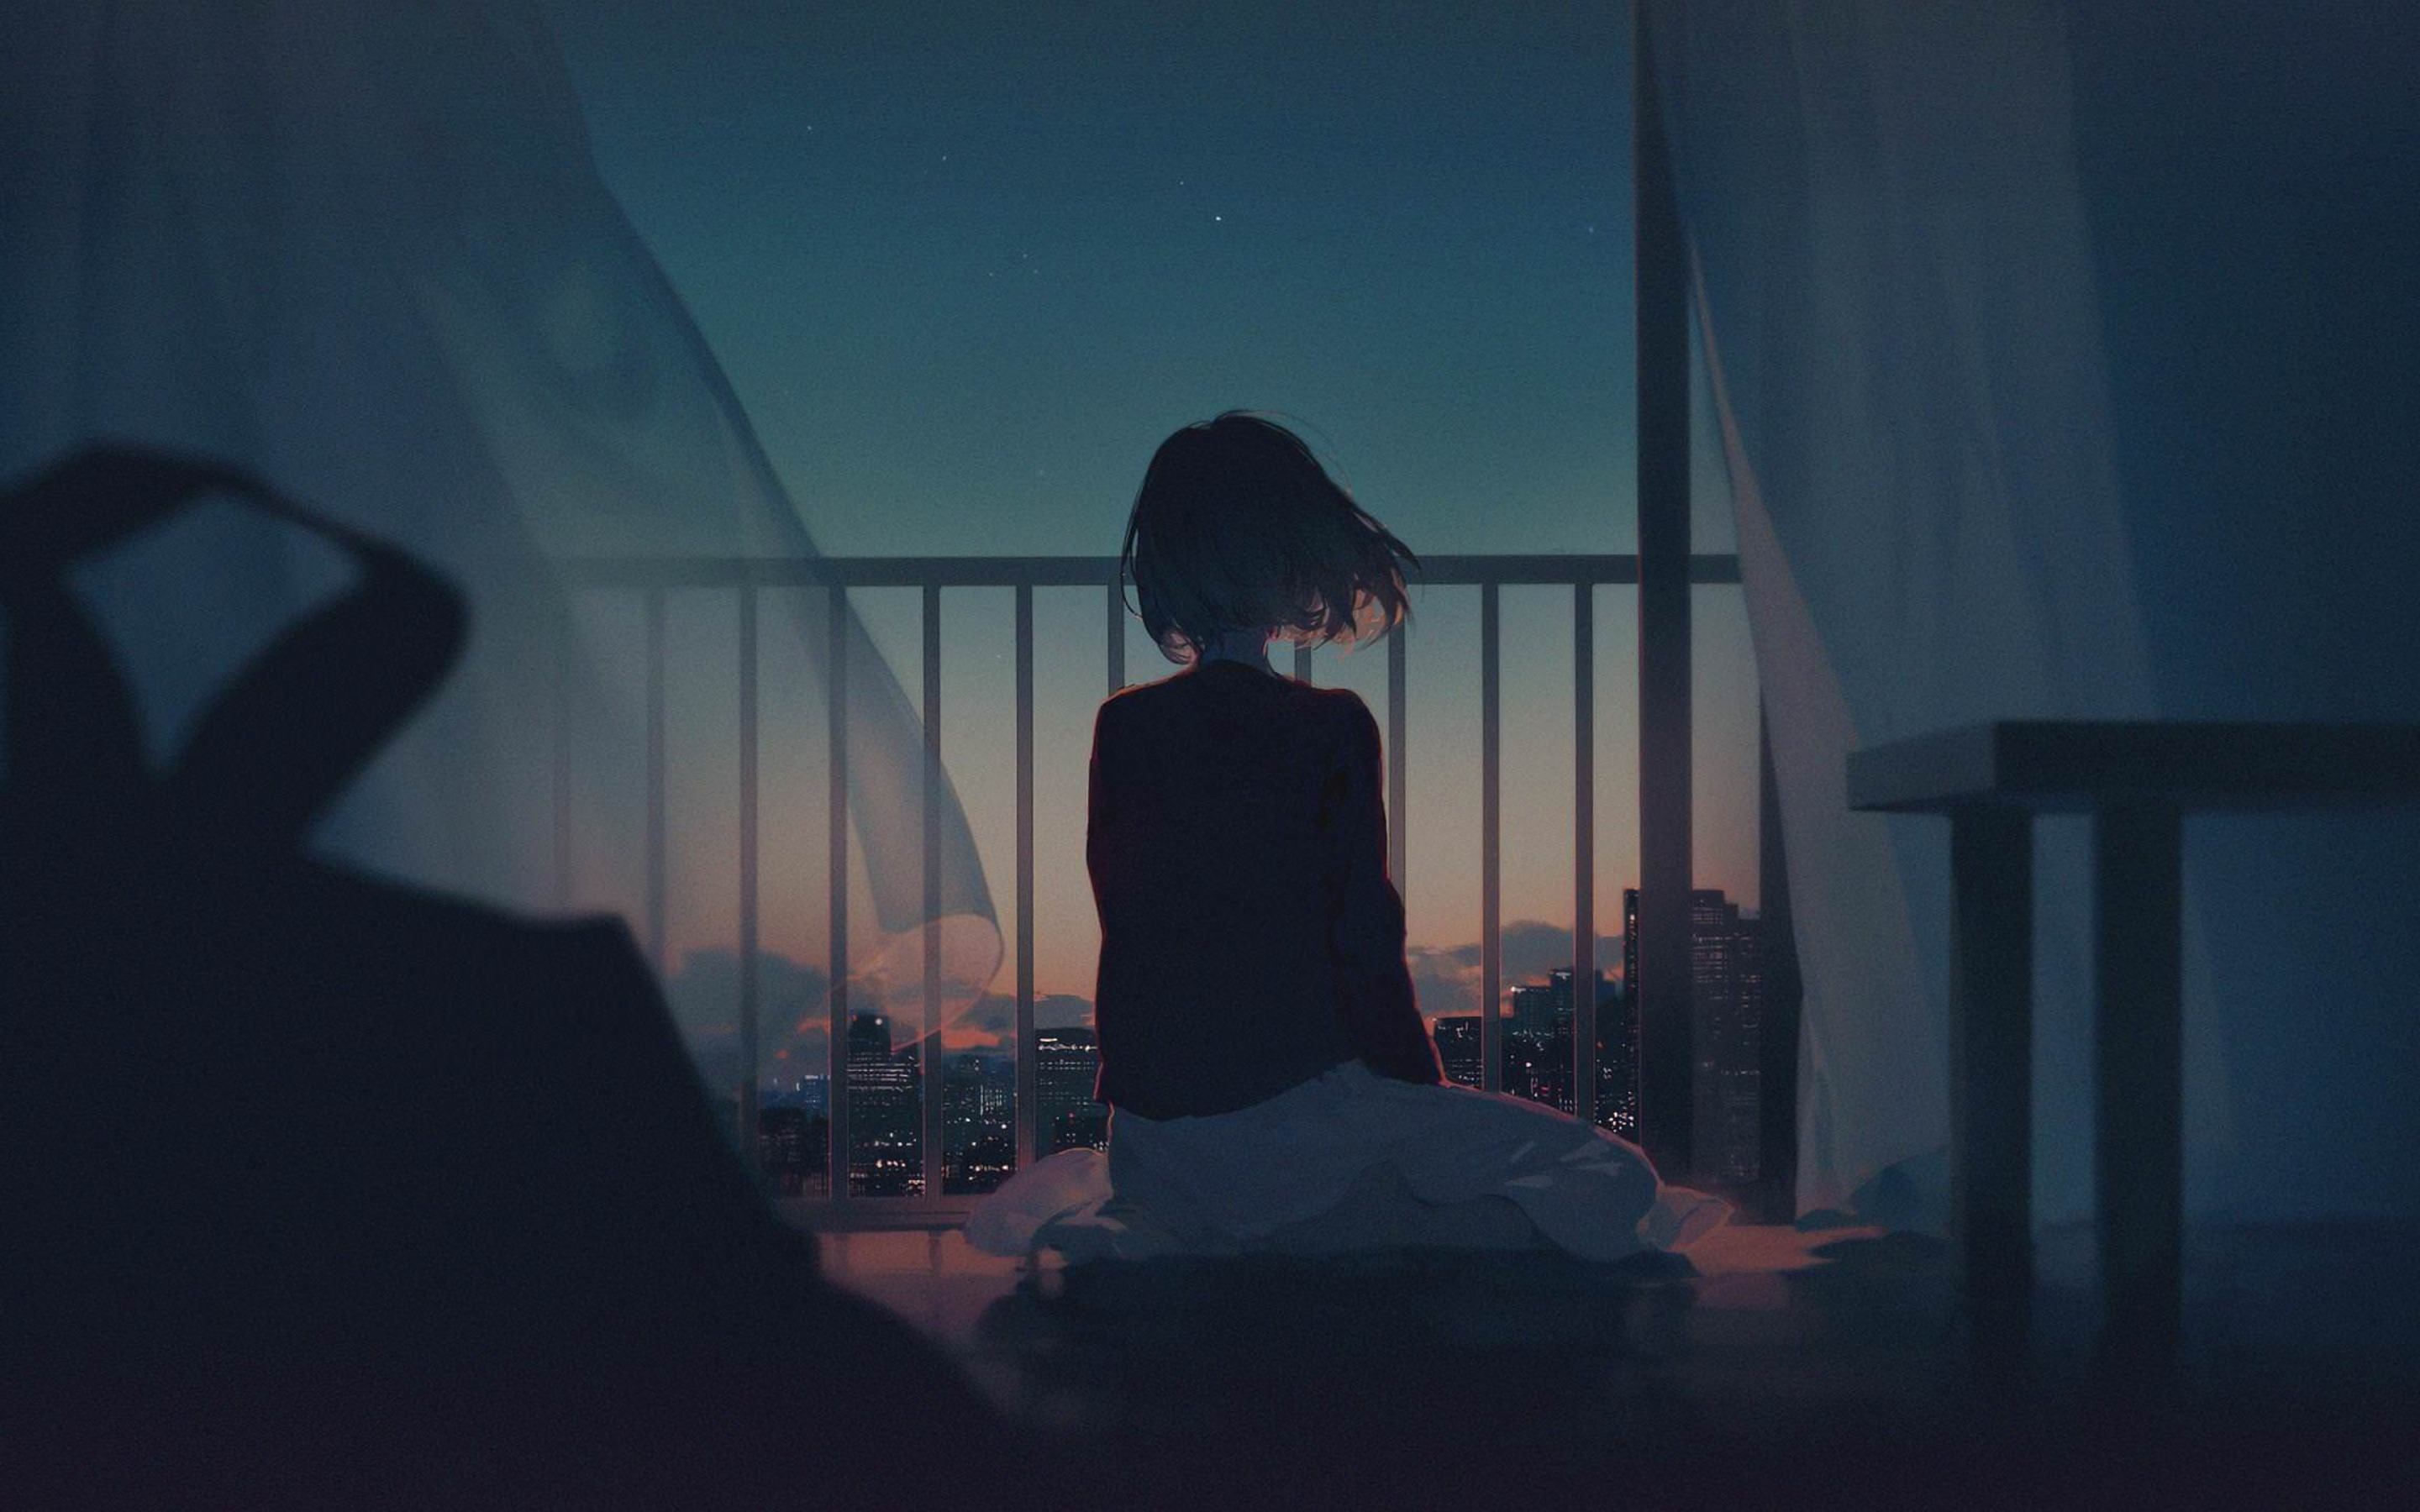 Alone girl artwork l9 jpg